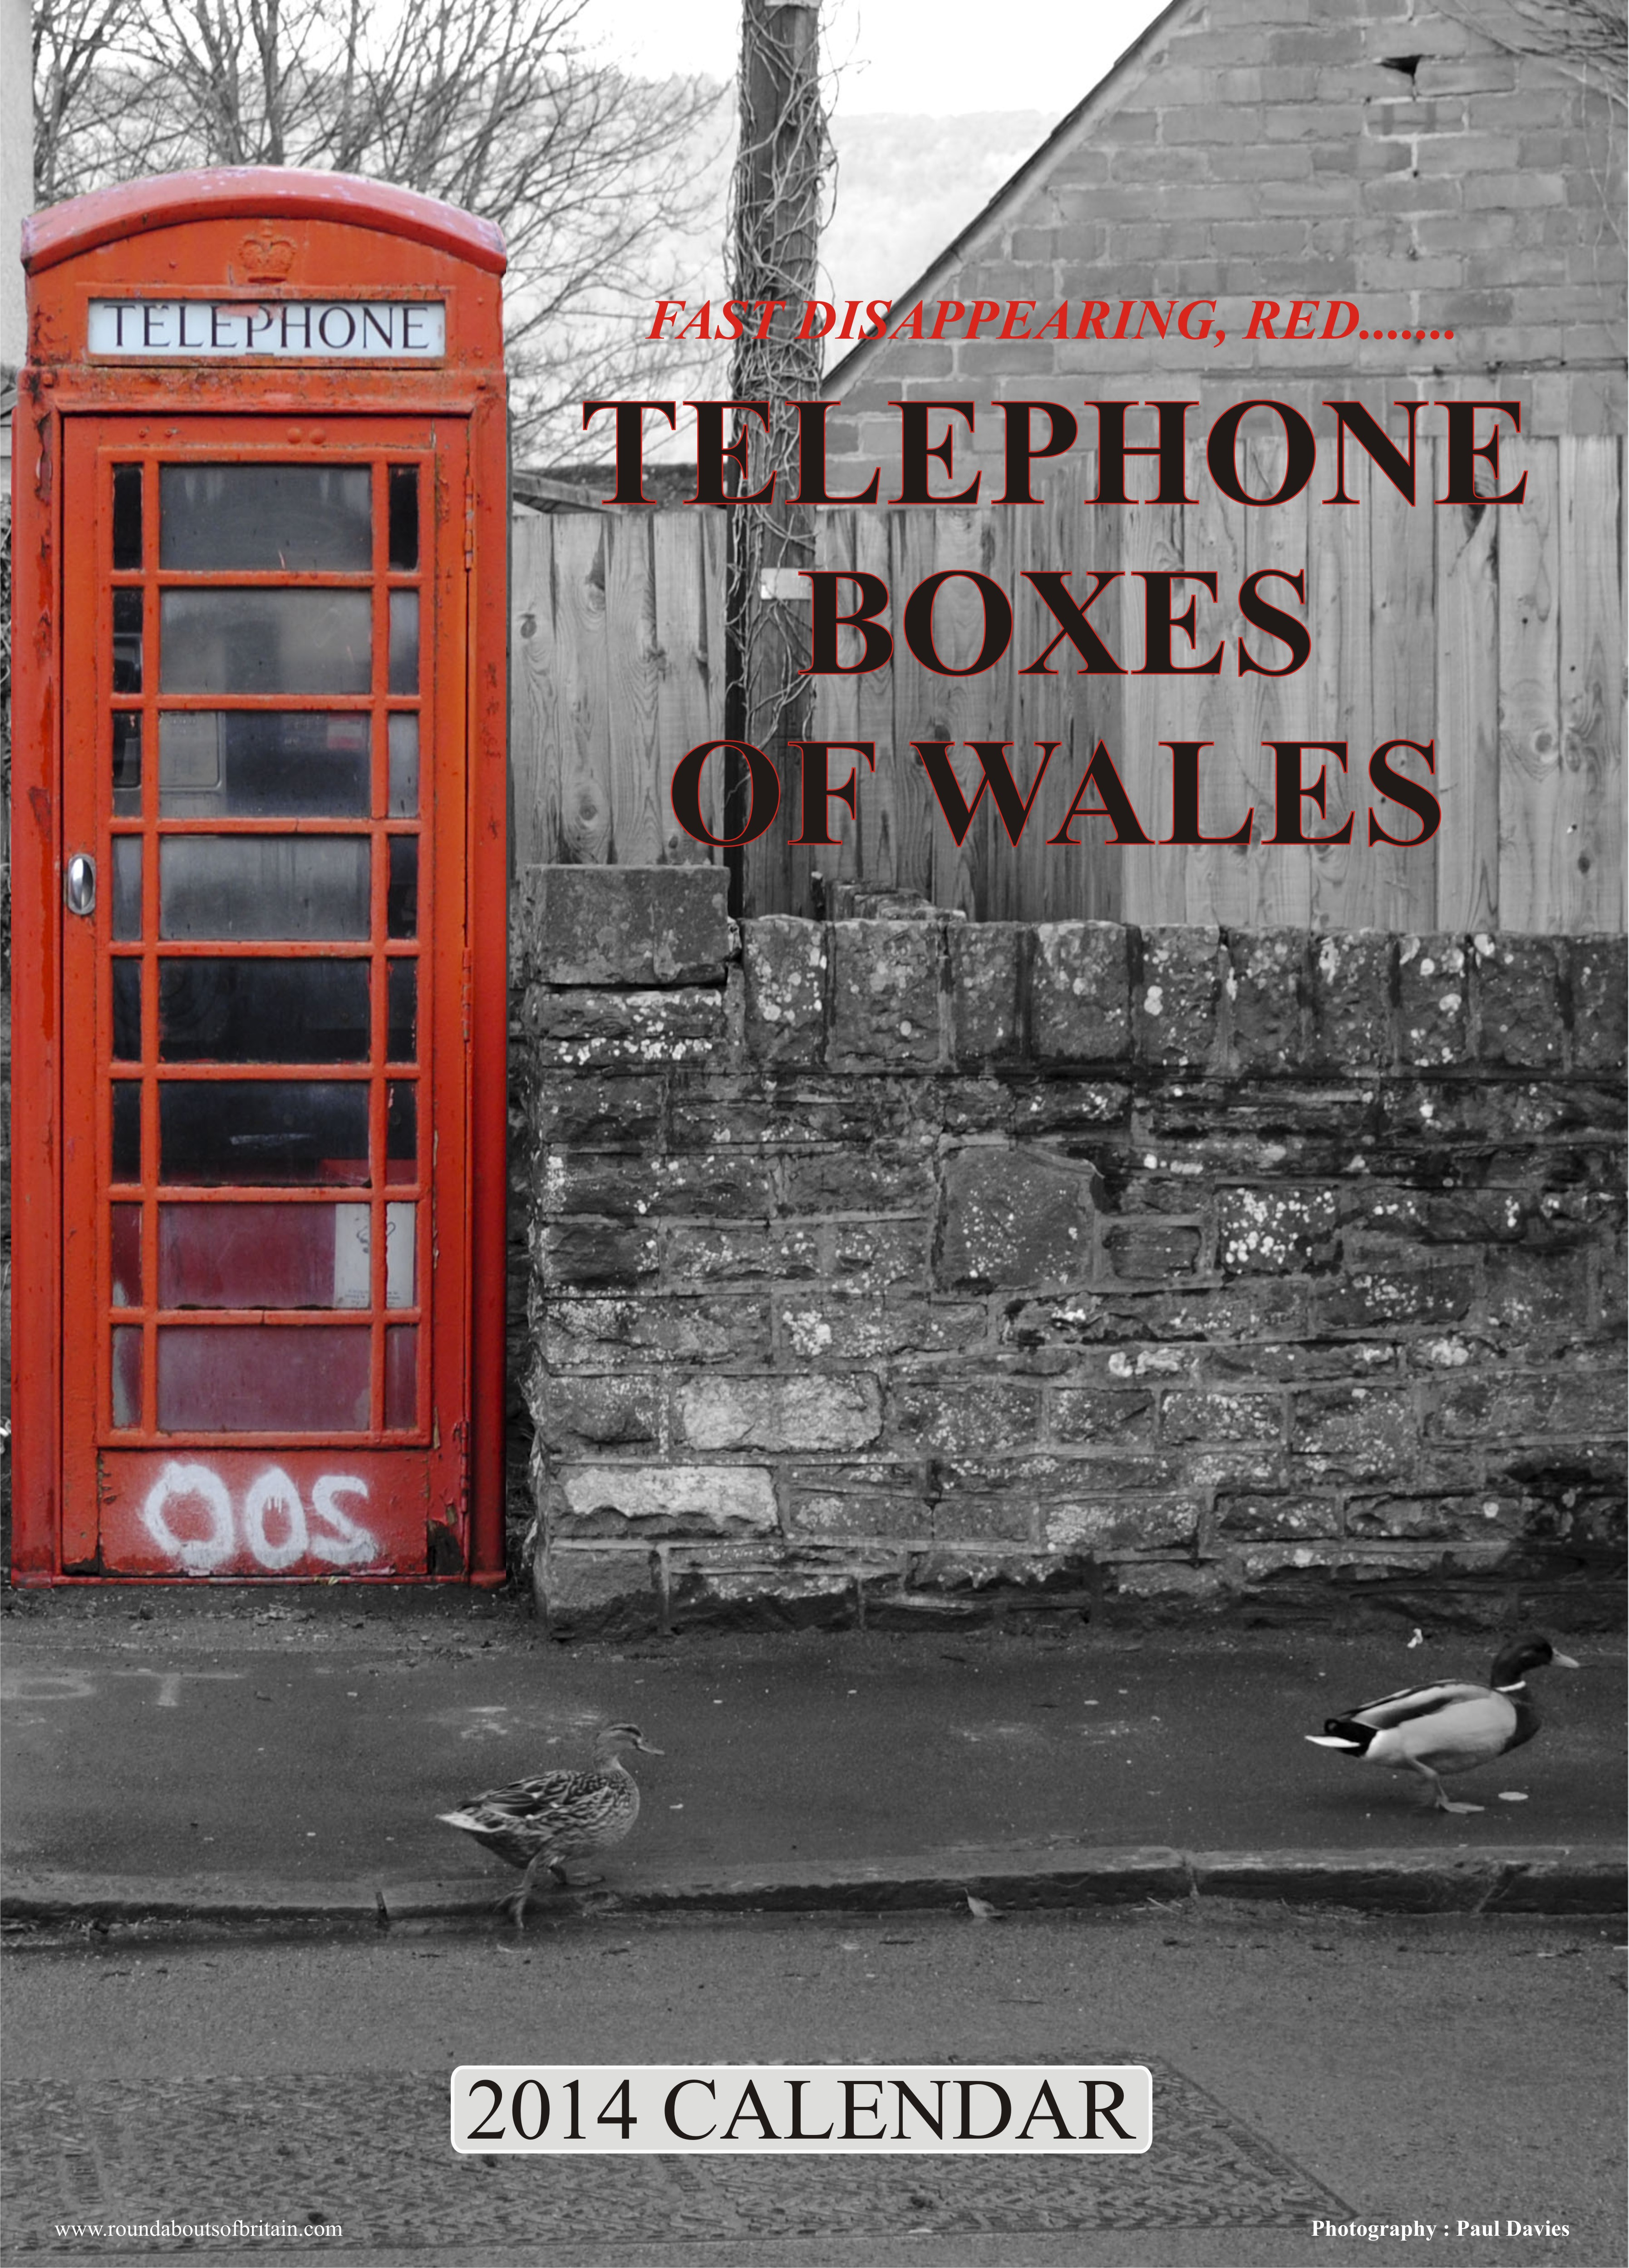 Fast Disappearing Red Telephone Boxes of Wales 2014 calendar